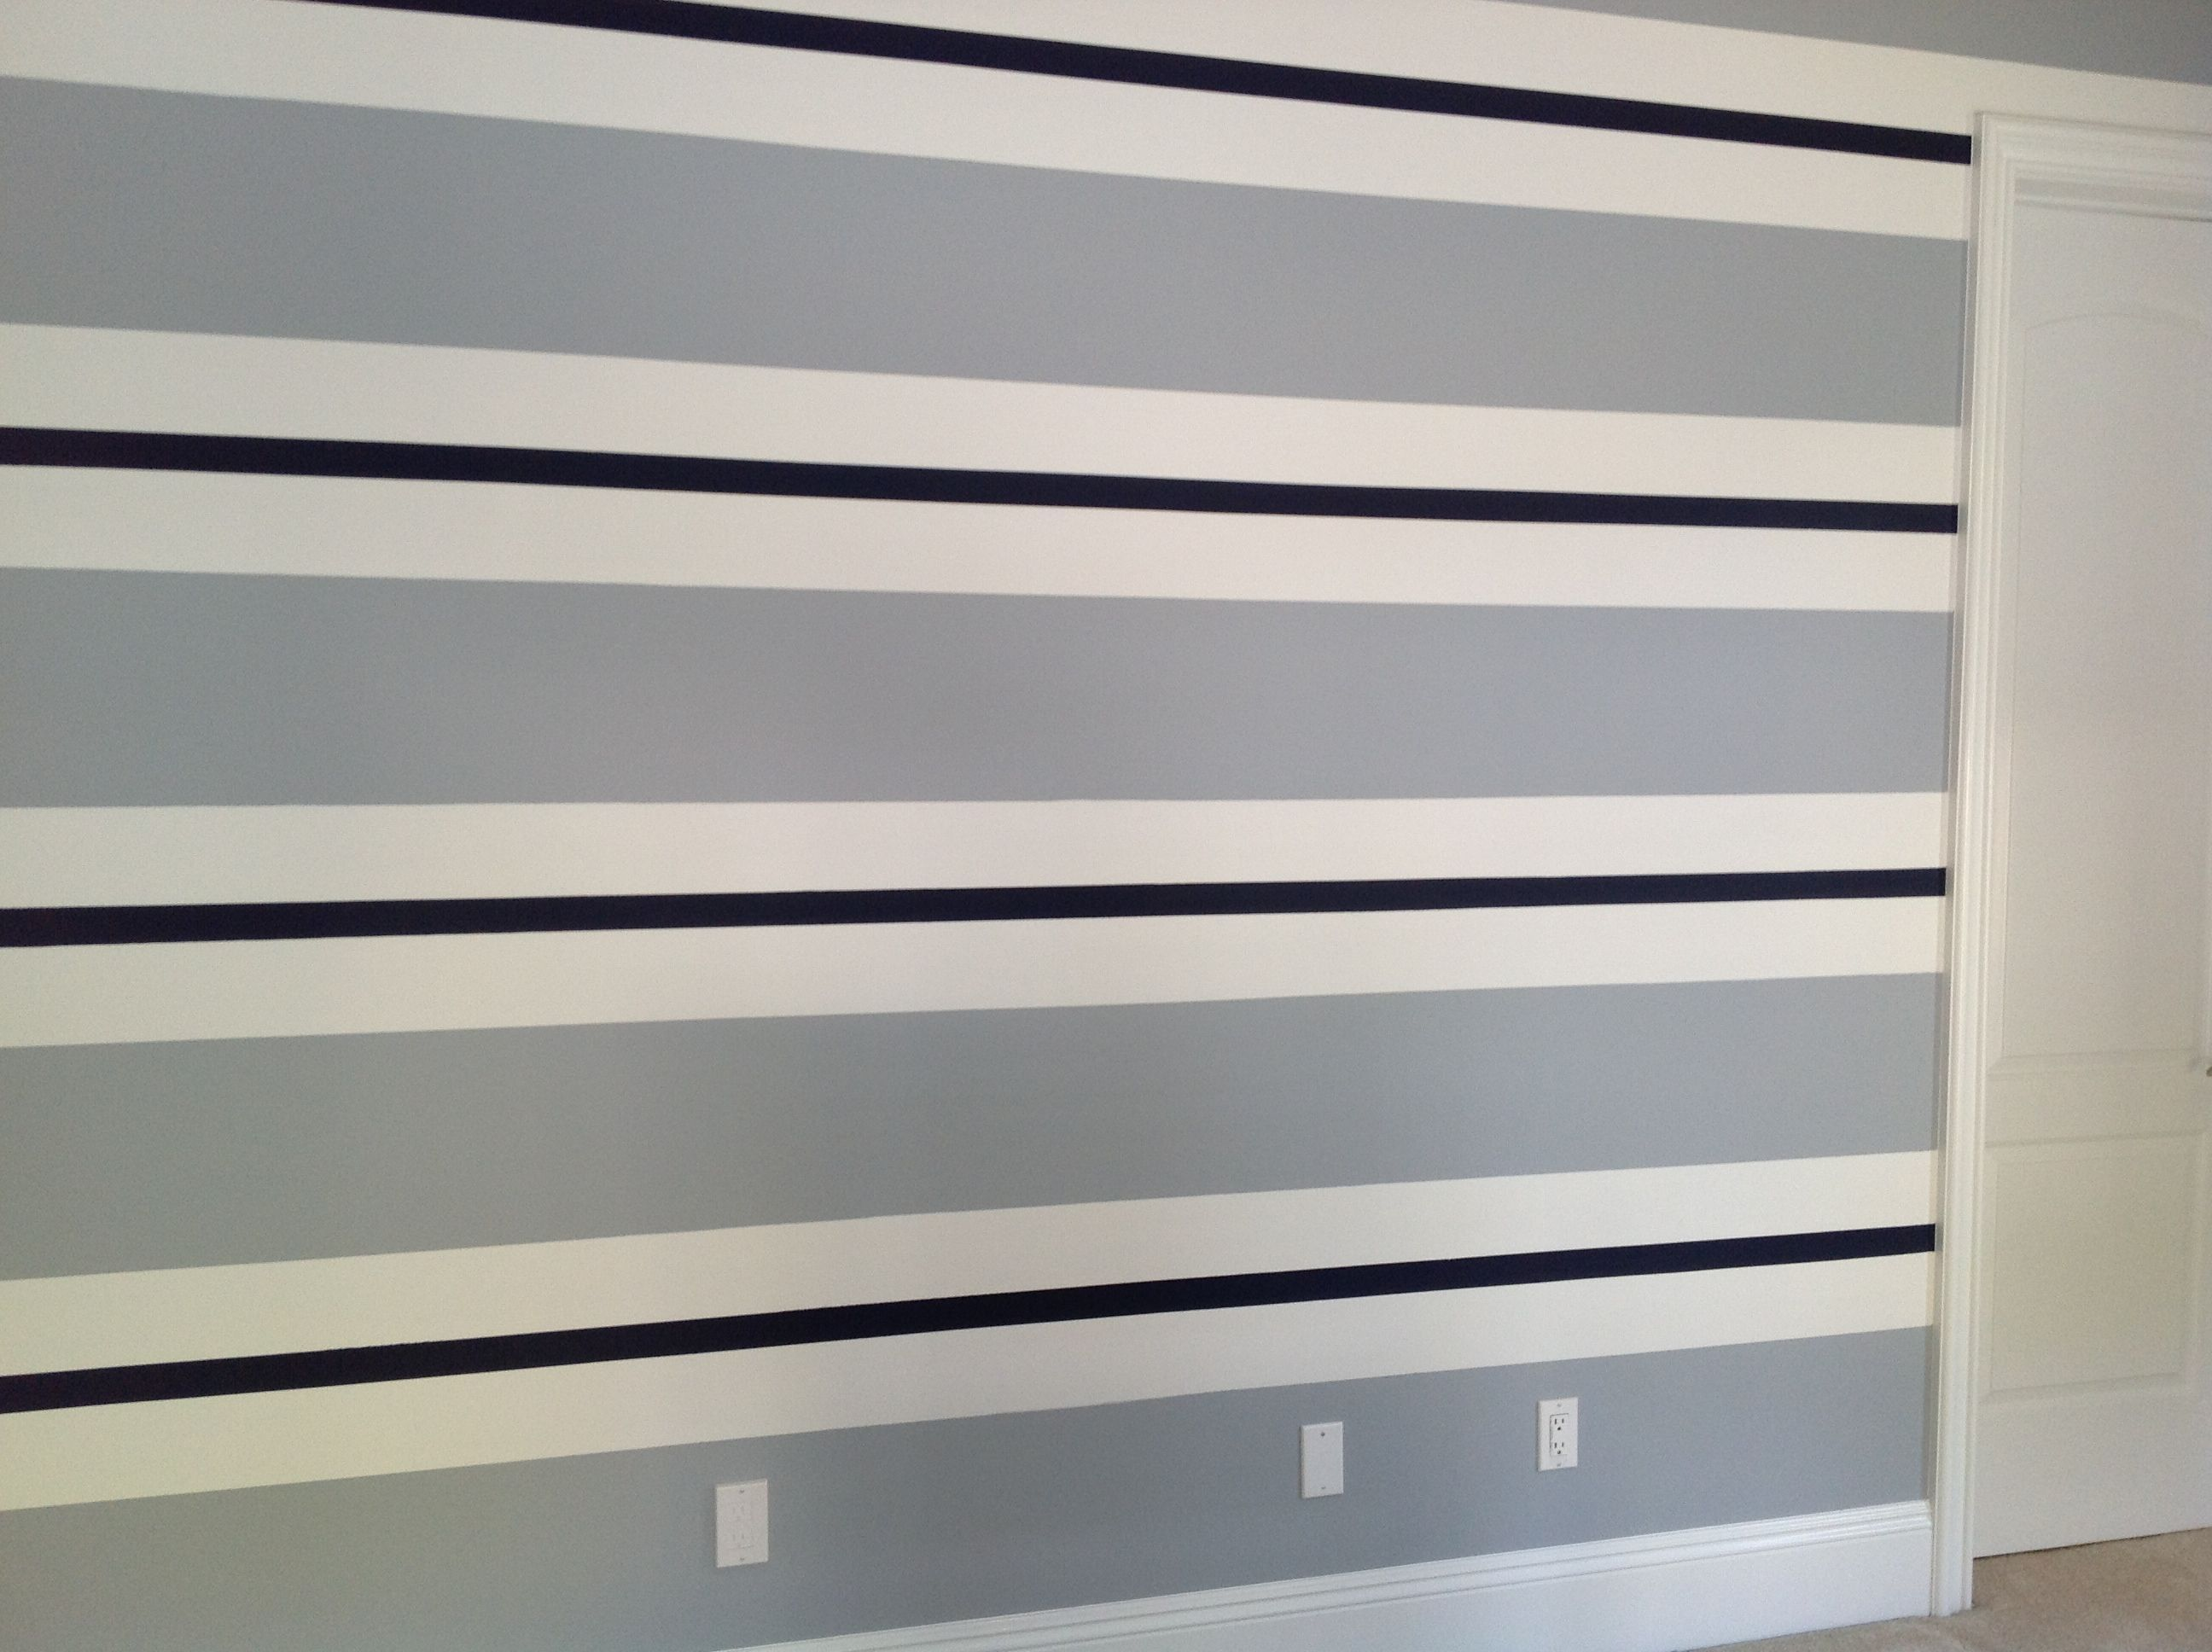 Horizontal Paint Stripe Ideas Bing Images Painting Stripes On